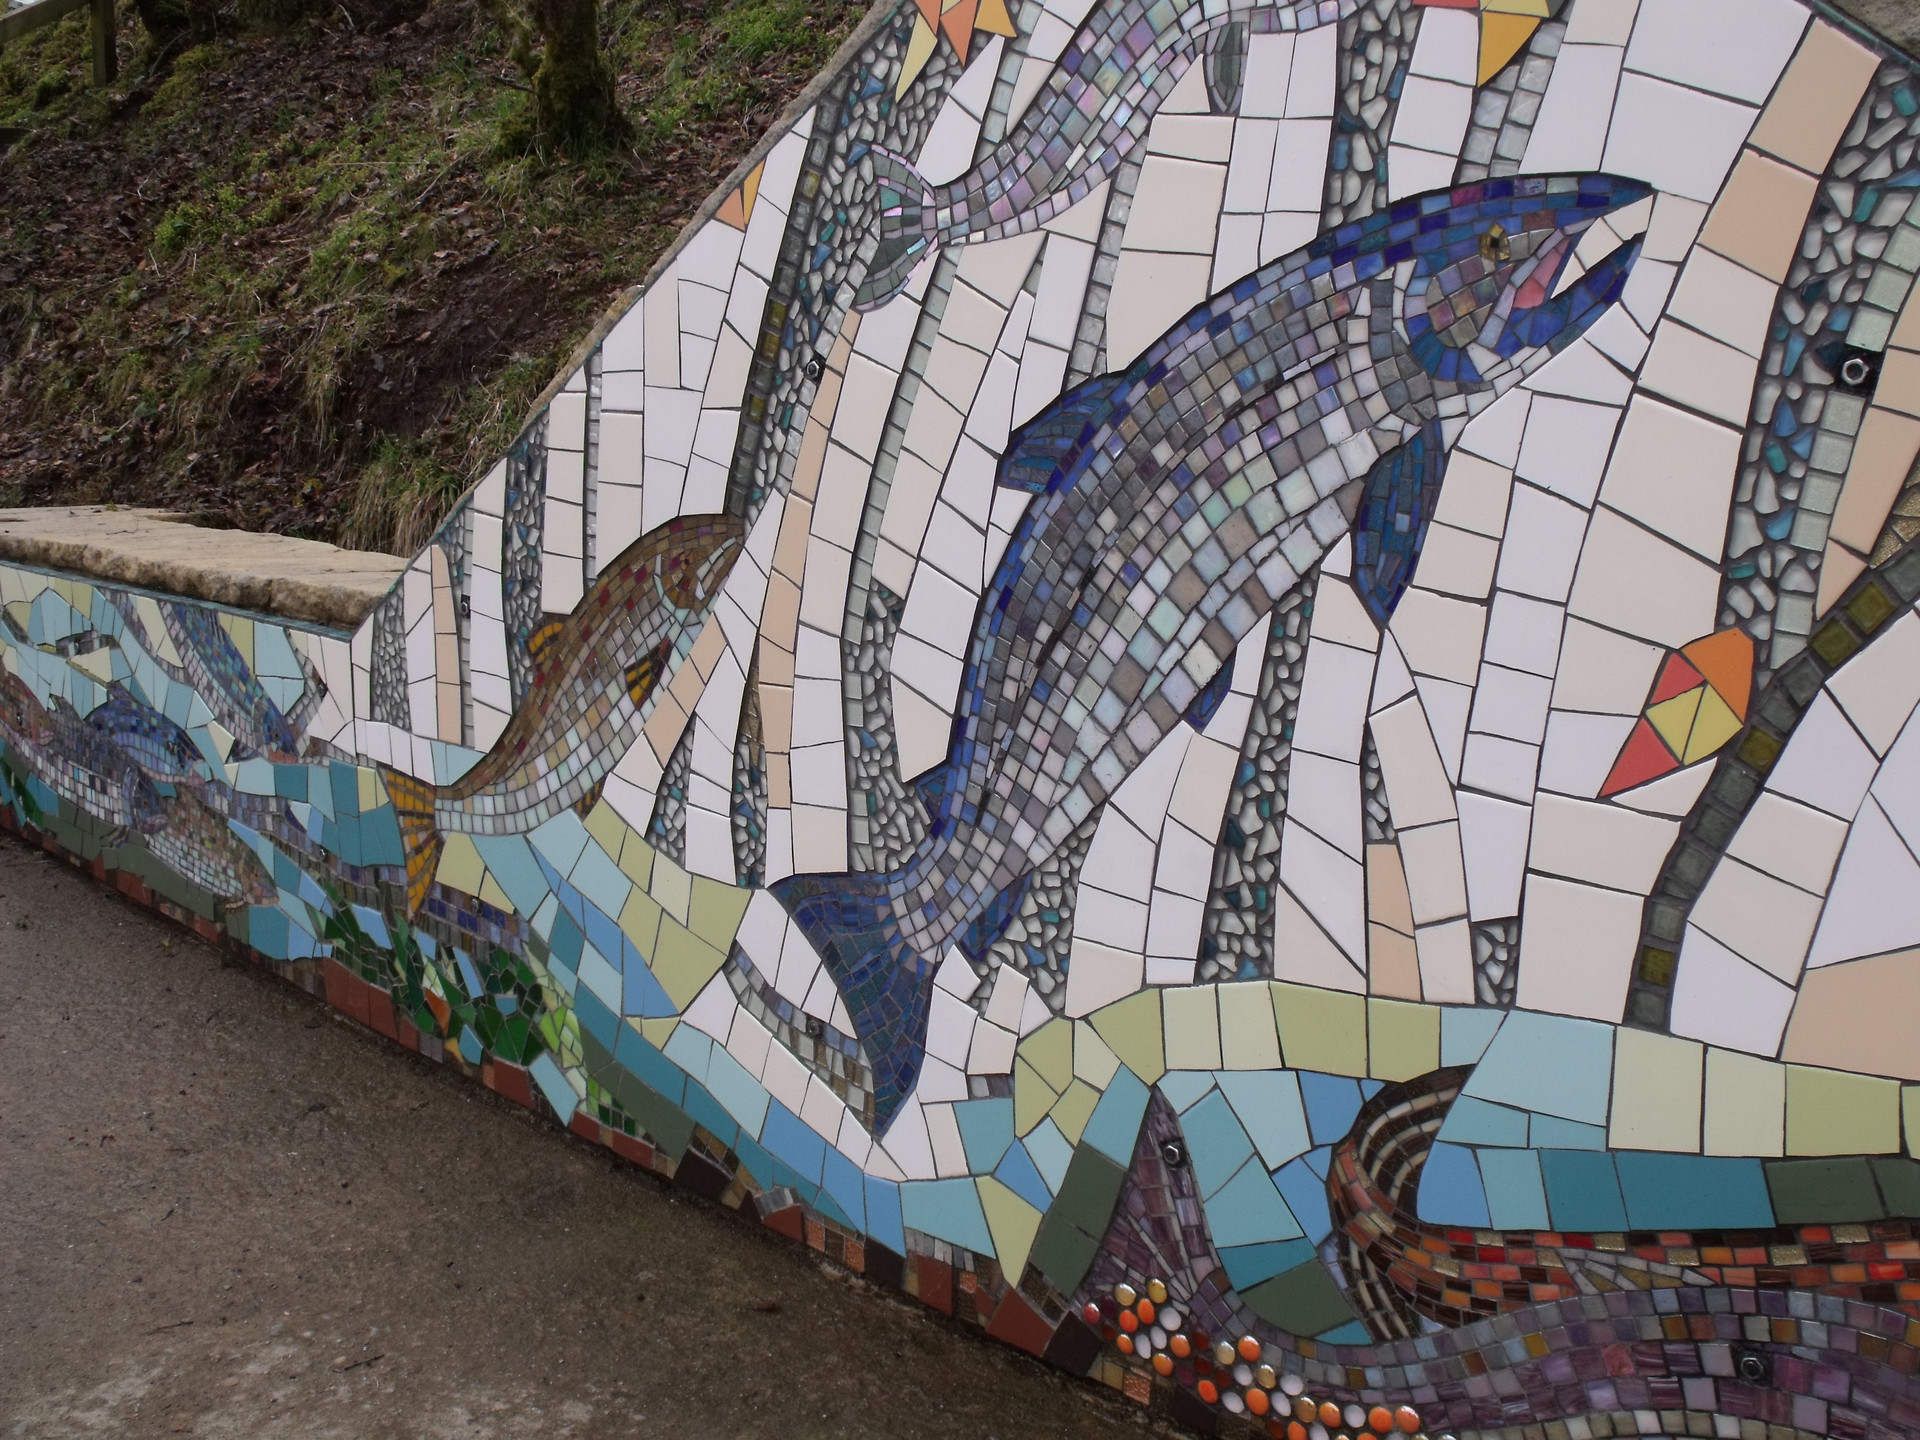 Falls of Shin Atlantic salmon interpretative Mosaic